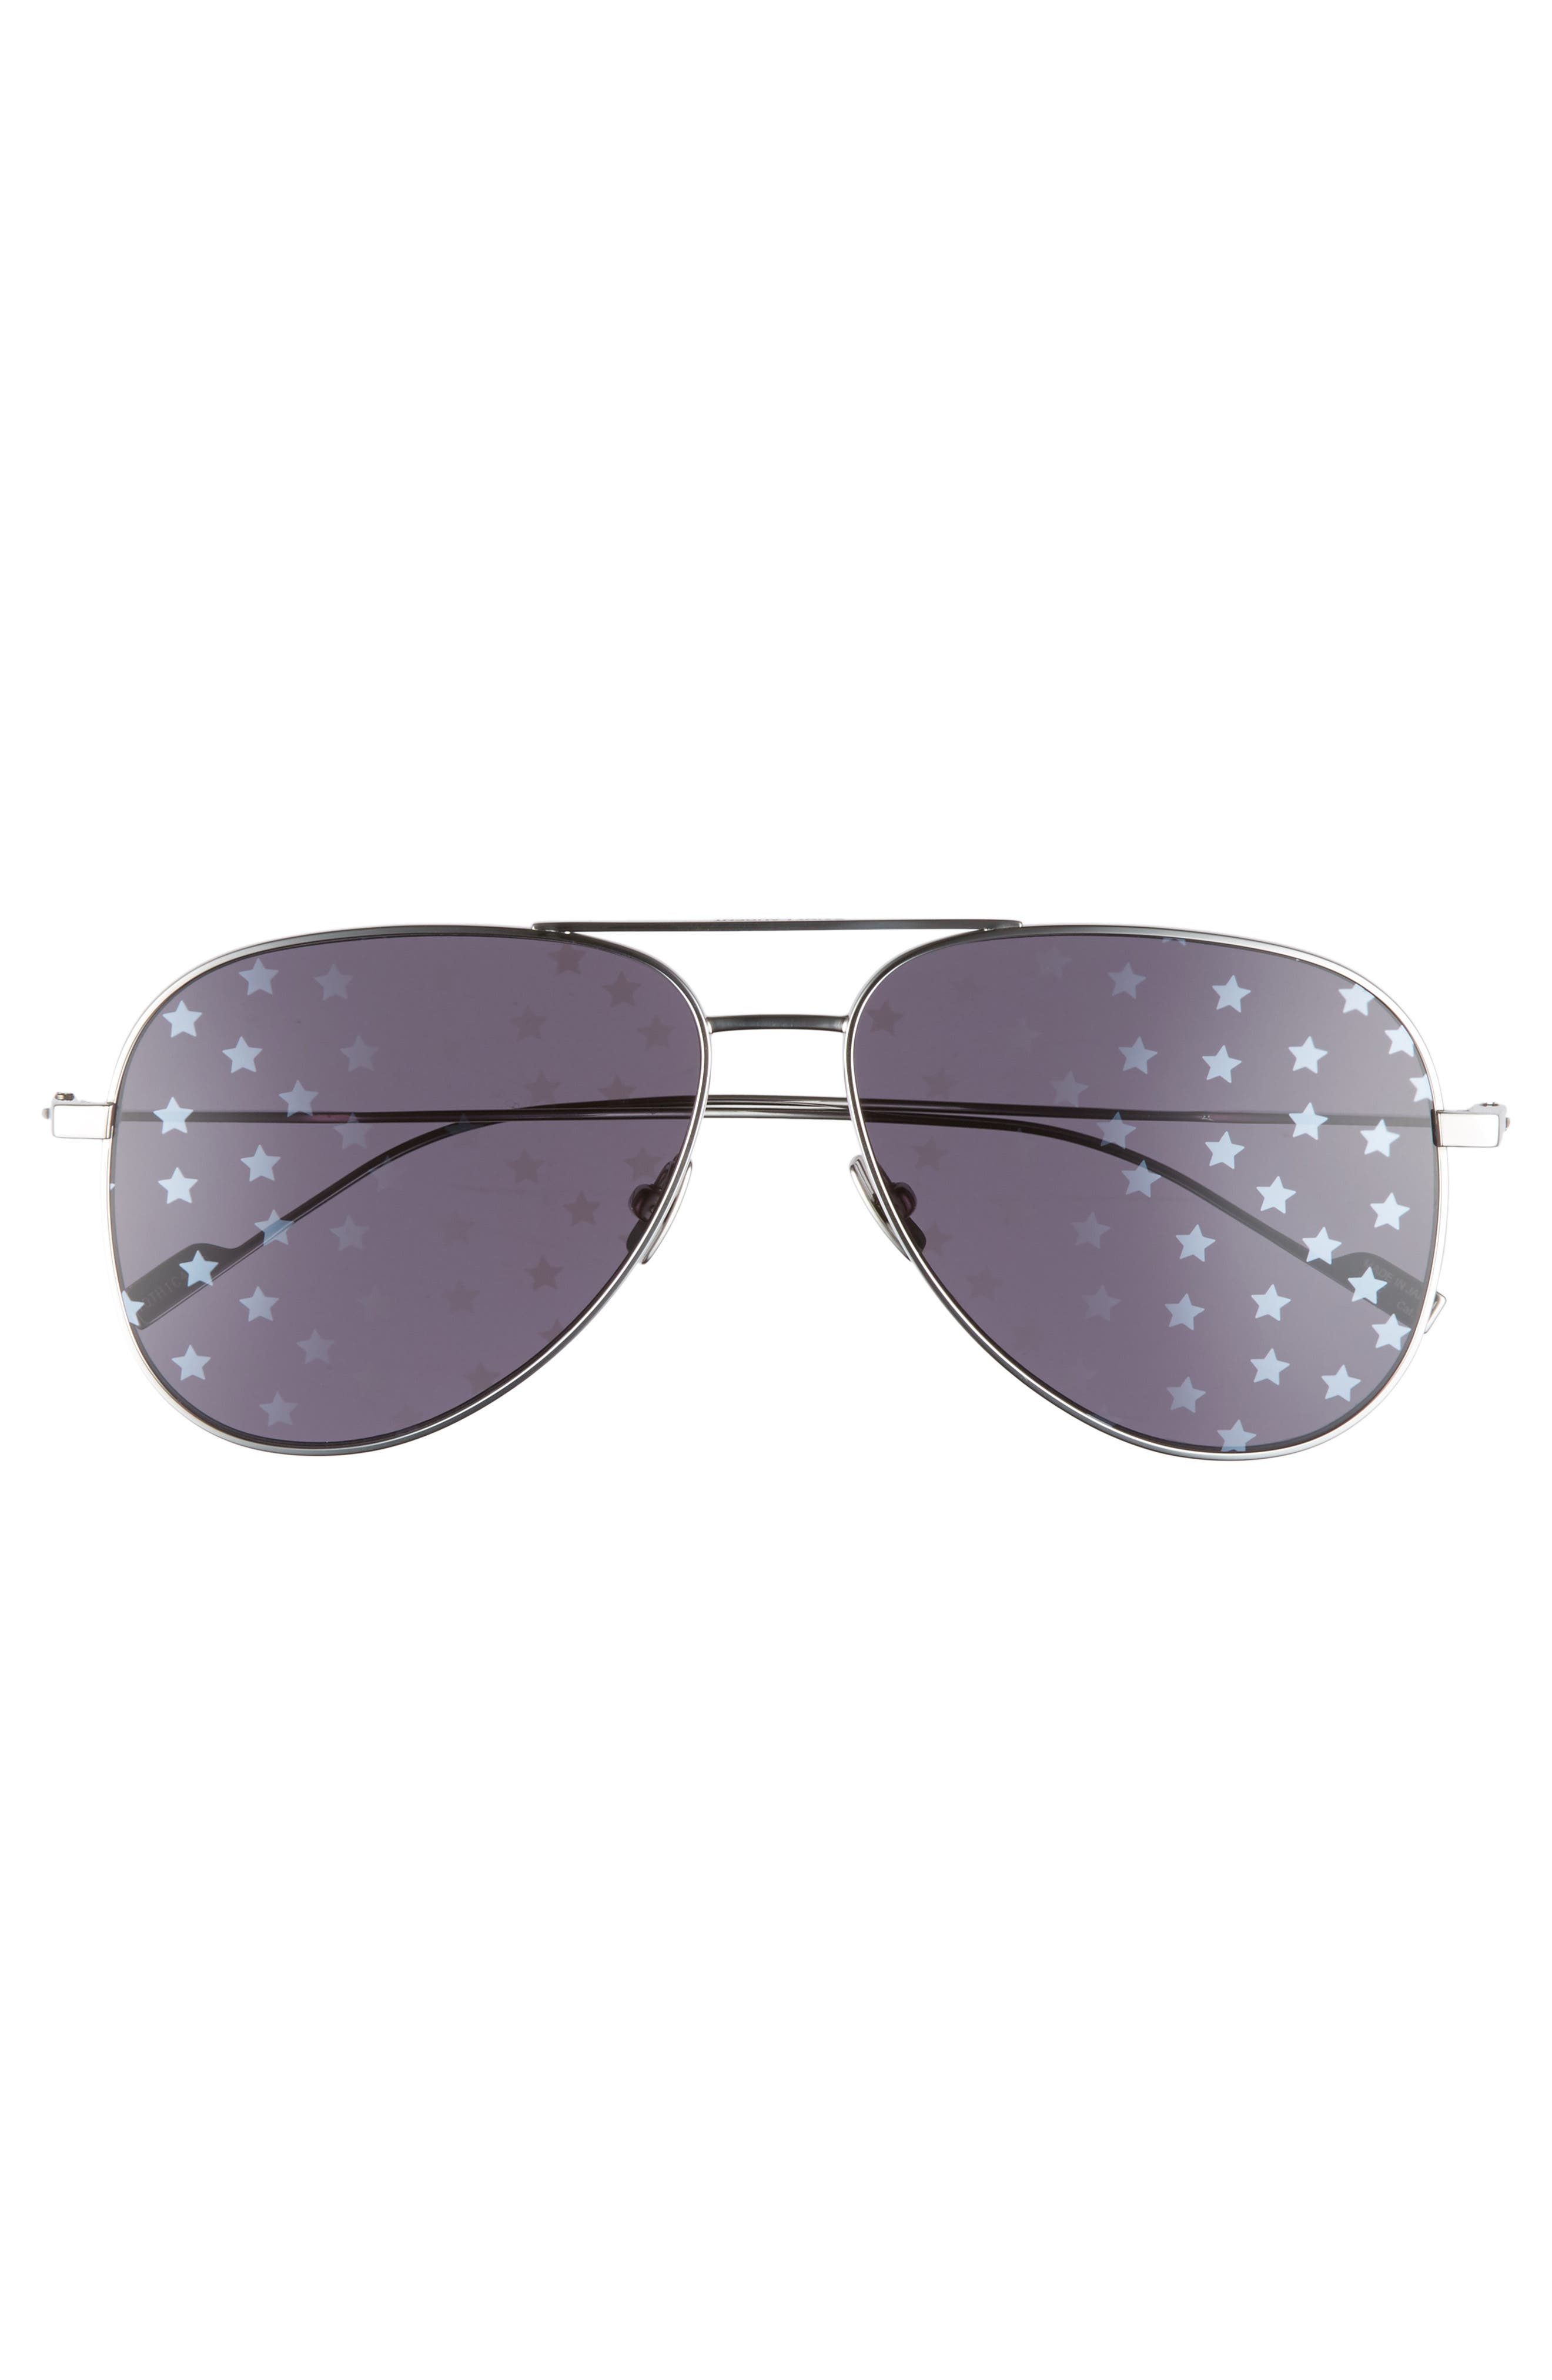 SL193 59mm Aviator Sunglasses,                             Alternate thumbnail 5, color,